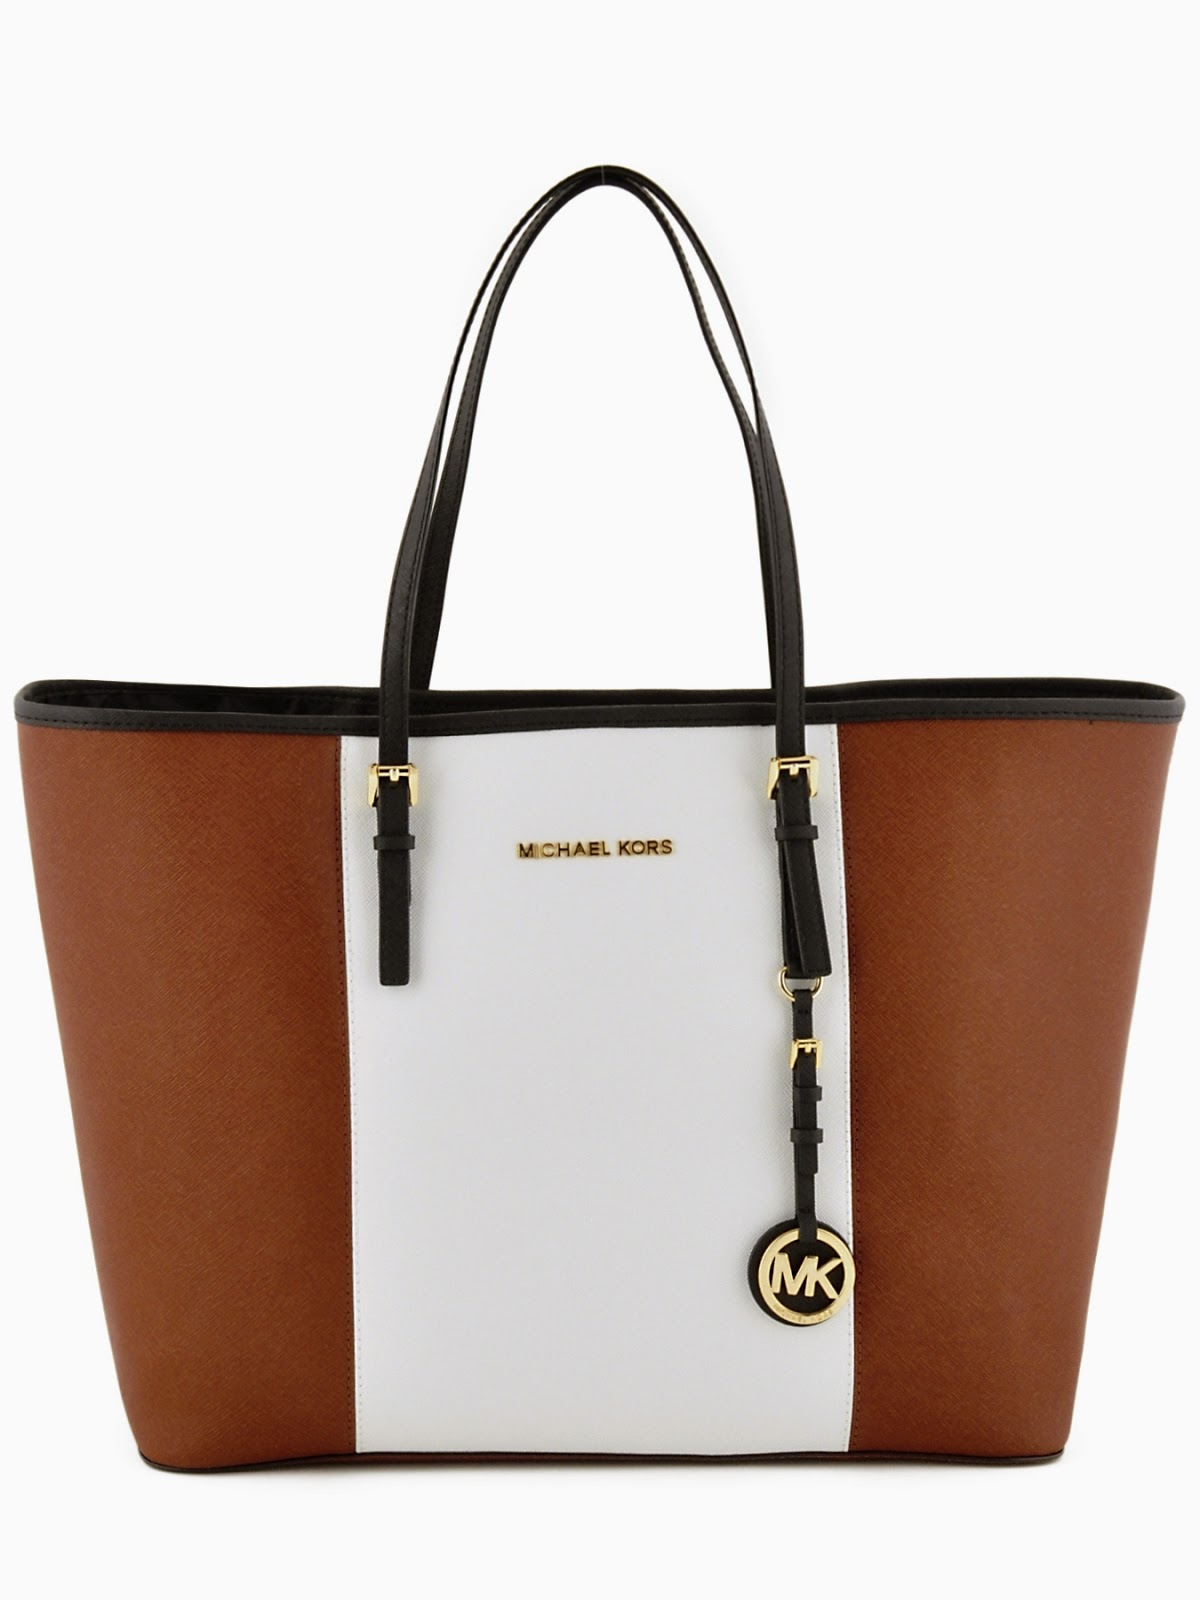 michael kors paris marais